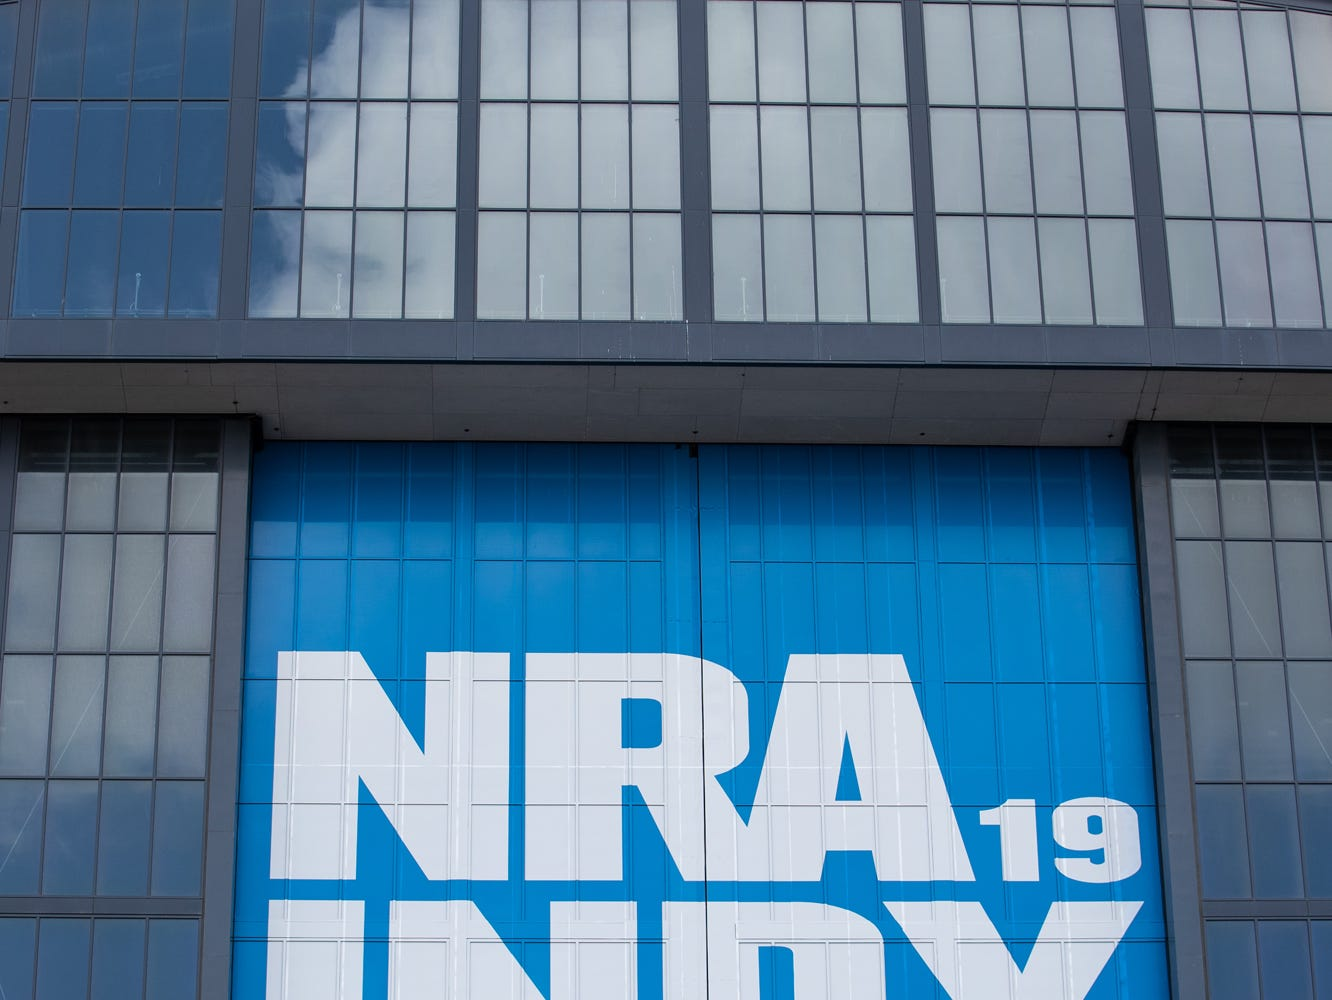 Law enforcement stand watch near the retractable wall at Lucas Oil Stadium during President Donald Trump's speech during the National Rifle Association Institute for Legislative Action in Indianapolis on Friday, April 26, 2019.